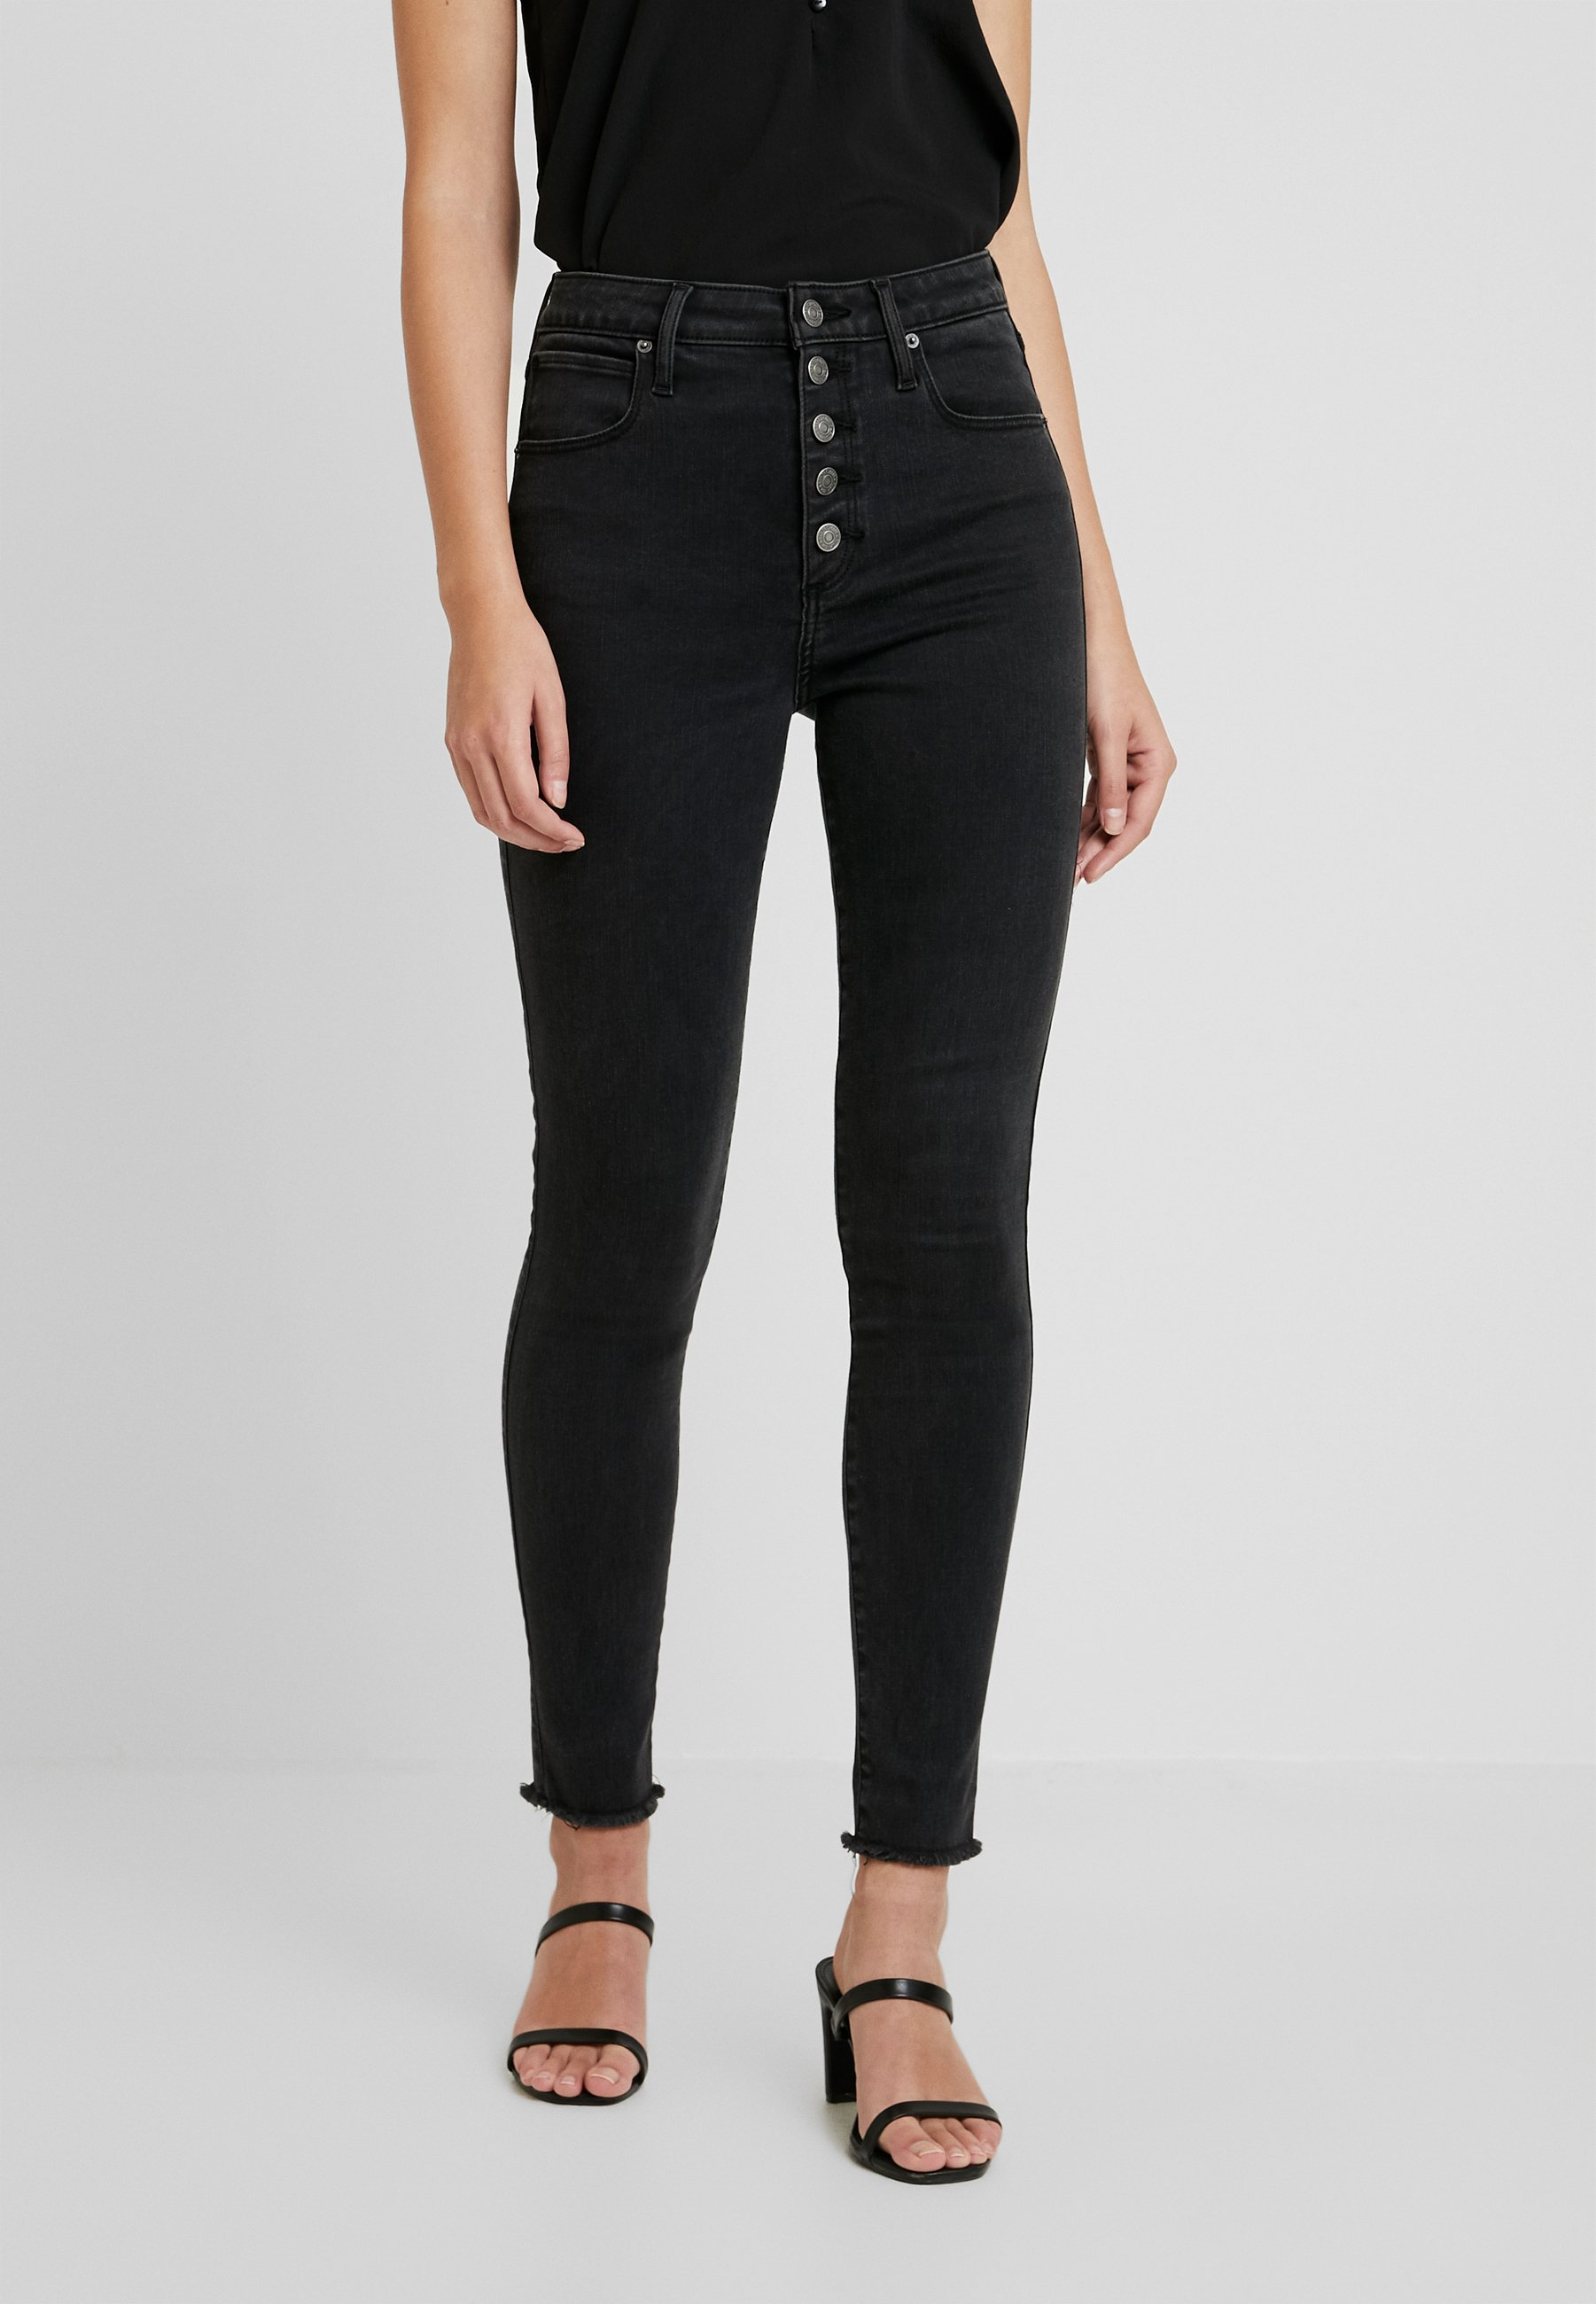 Abercrombie & Fitch SHANK CURVY ANKLE - Jeans Skinny - black - Jeans Femme RdghZ